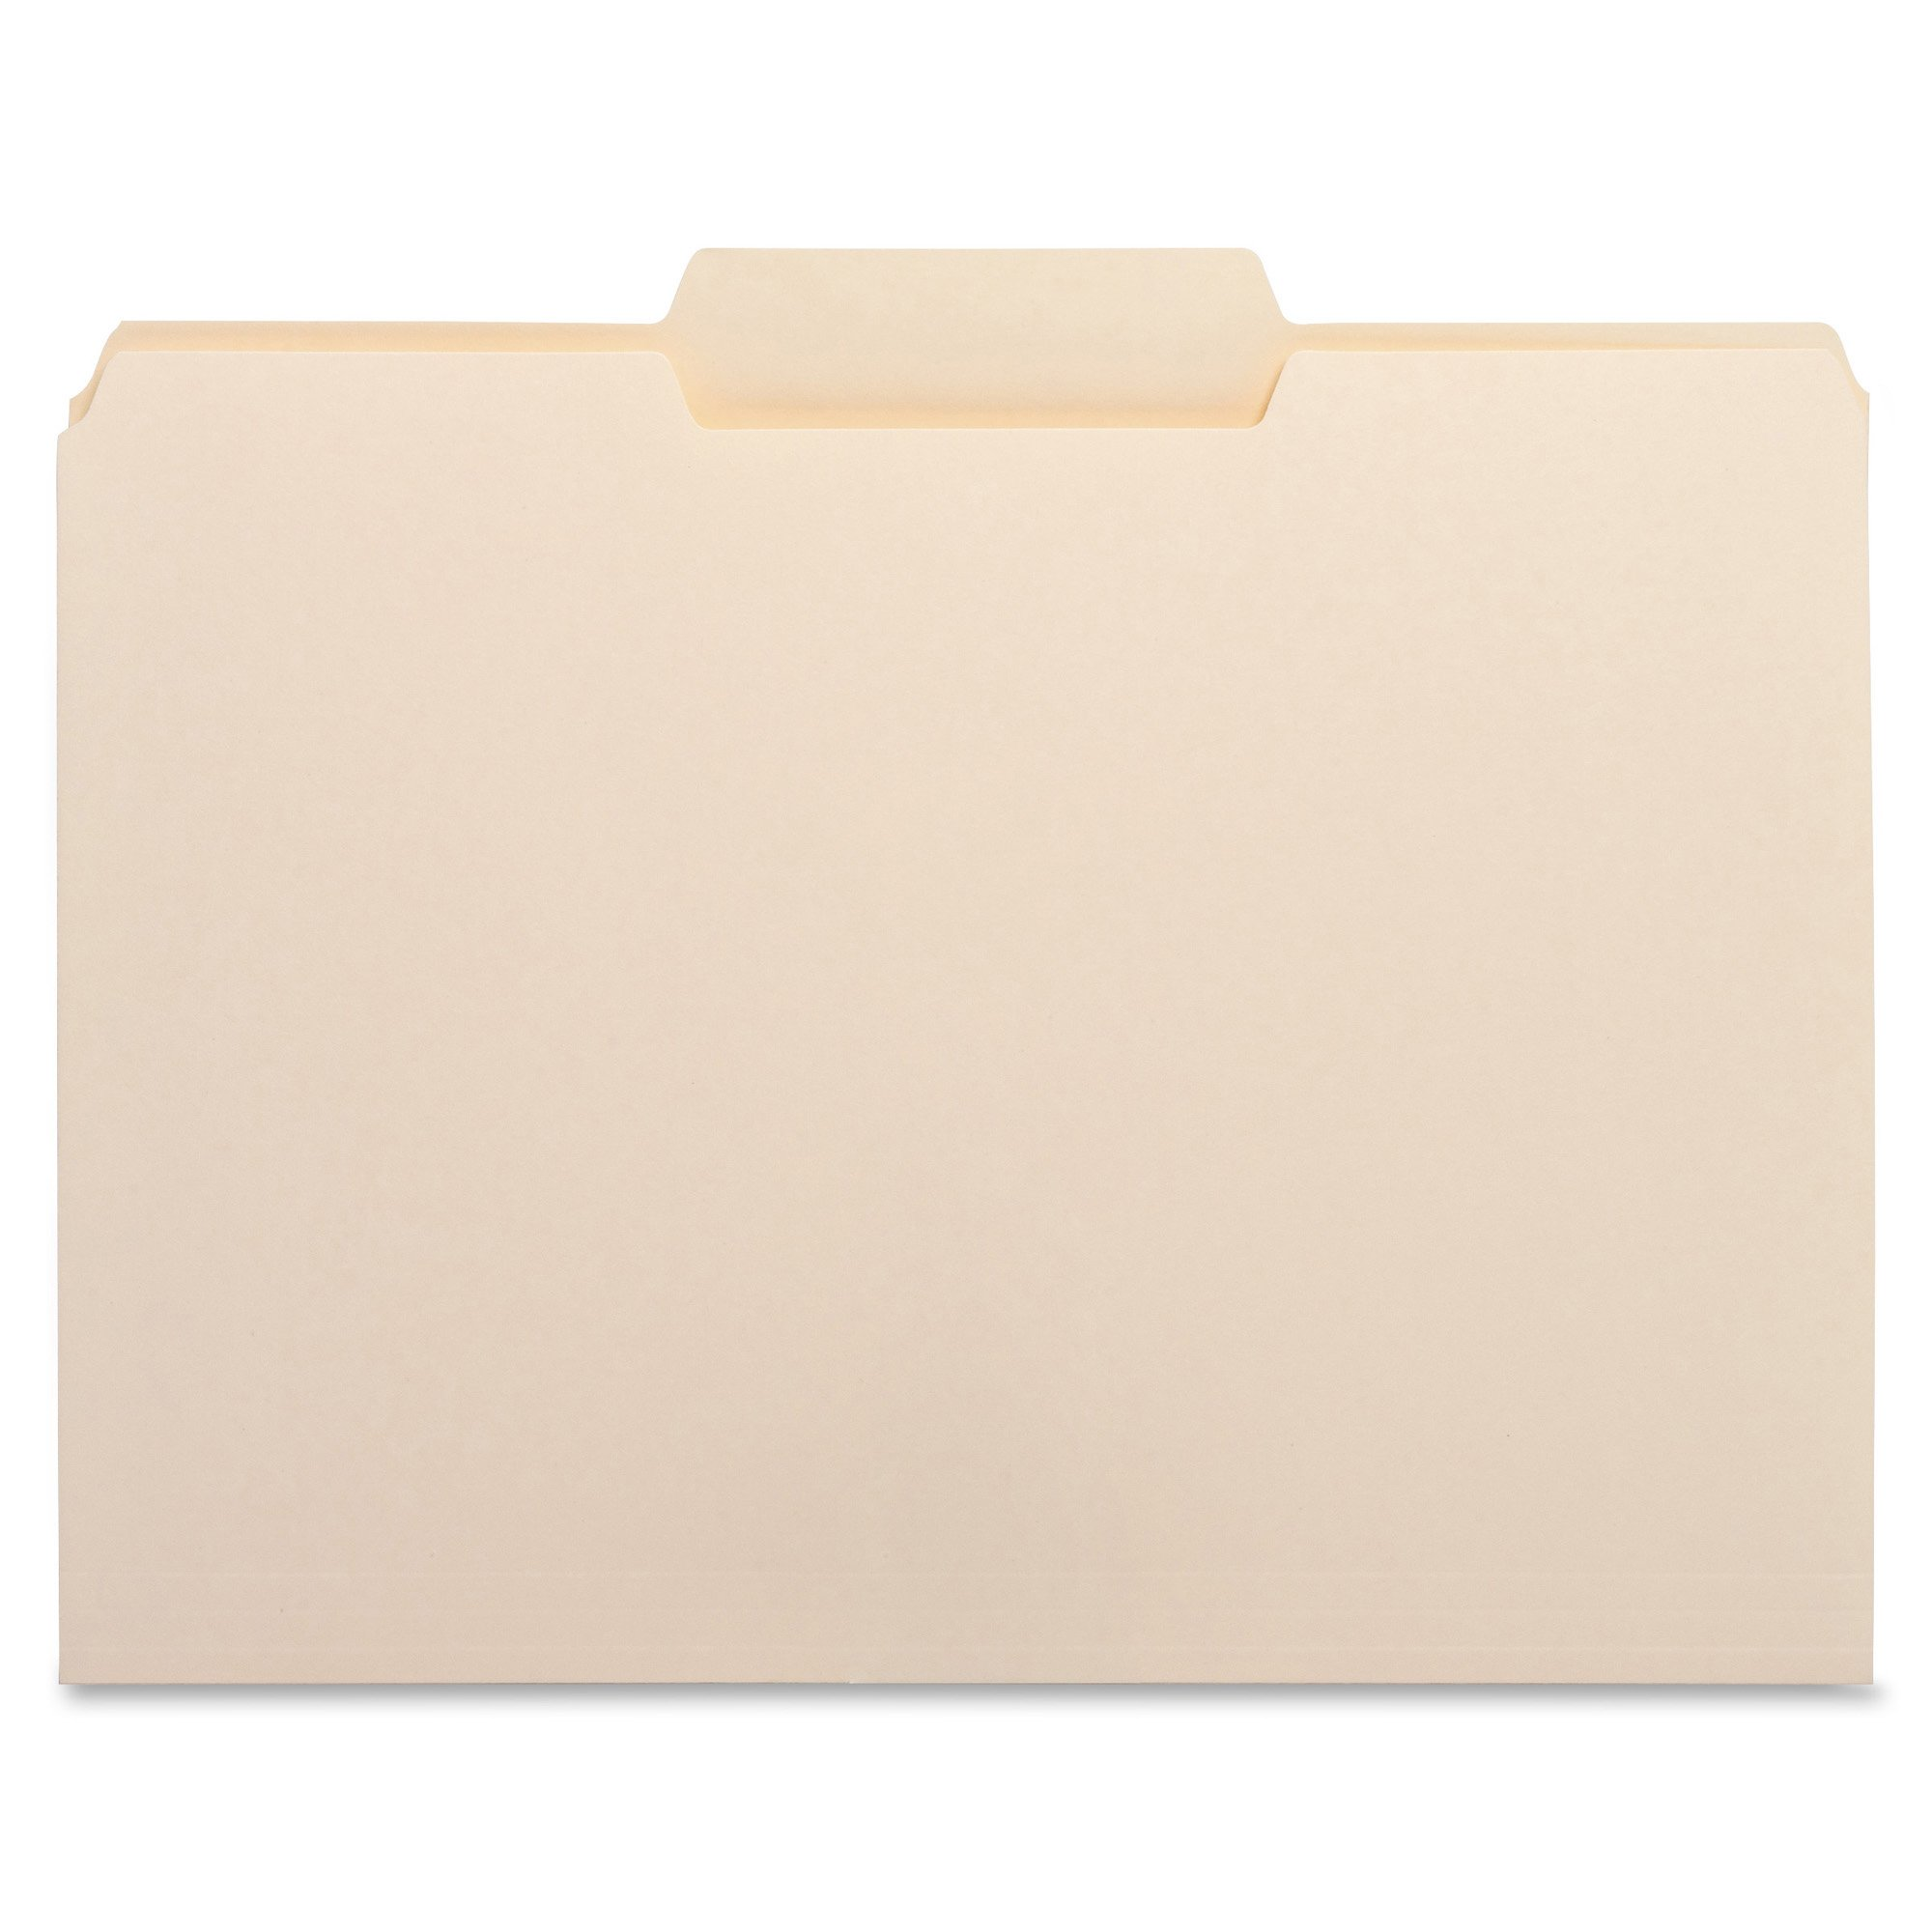 Business Source 1/3 Cut Top Tab File Folder - Middle Tab - Box of 100 Manila by Business Source